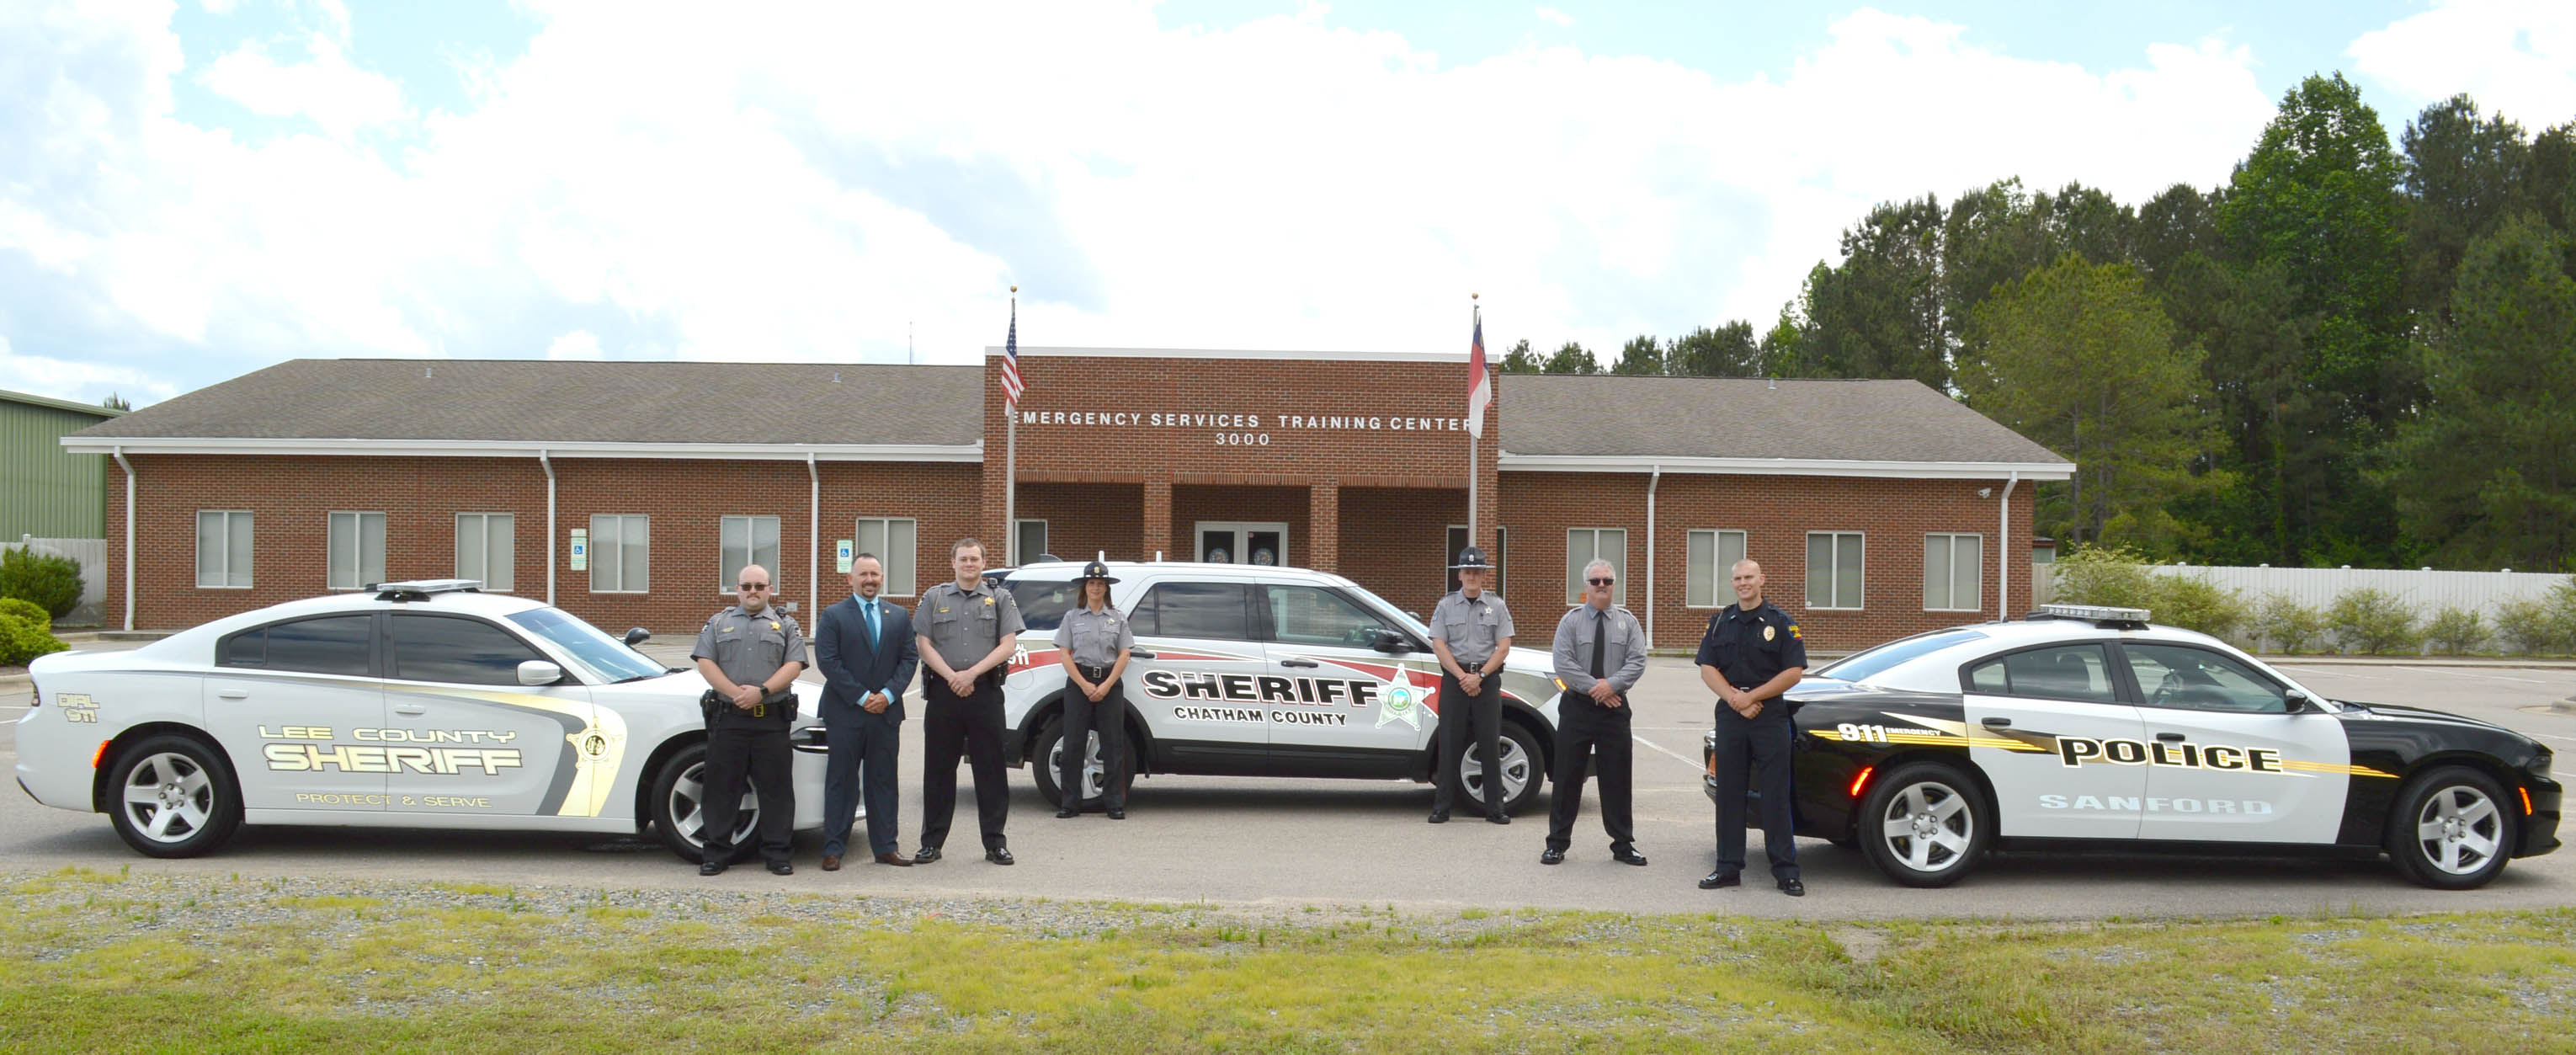 Click to enlarge,  Pictured are members of Central Carolina Community College's Basic Law Enforcement Training (BLET) Fall Night Class 2018-2019.  For more information about the college's BLET program, visit www.cccc.edu/blet or contact Robert Powell at rpowell@cccc.edu or 919-777-7774.